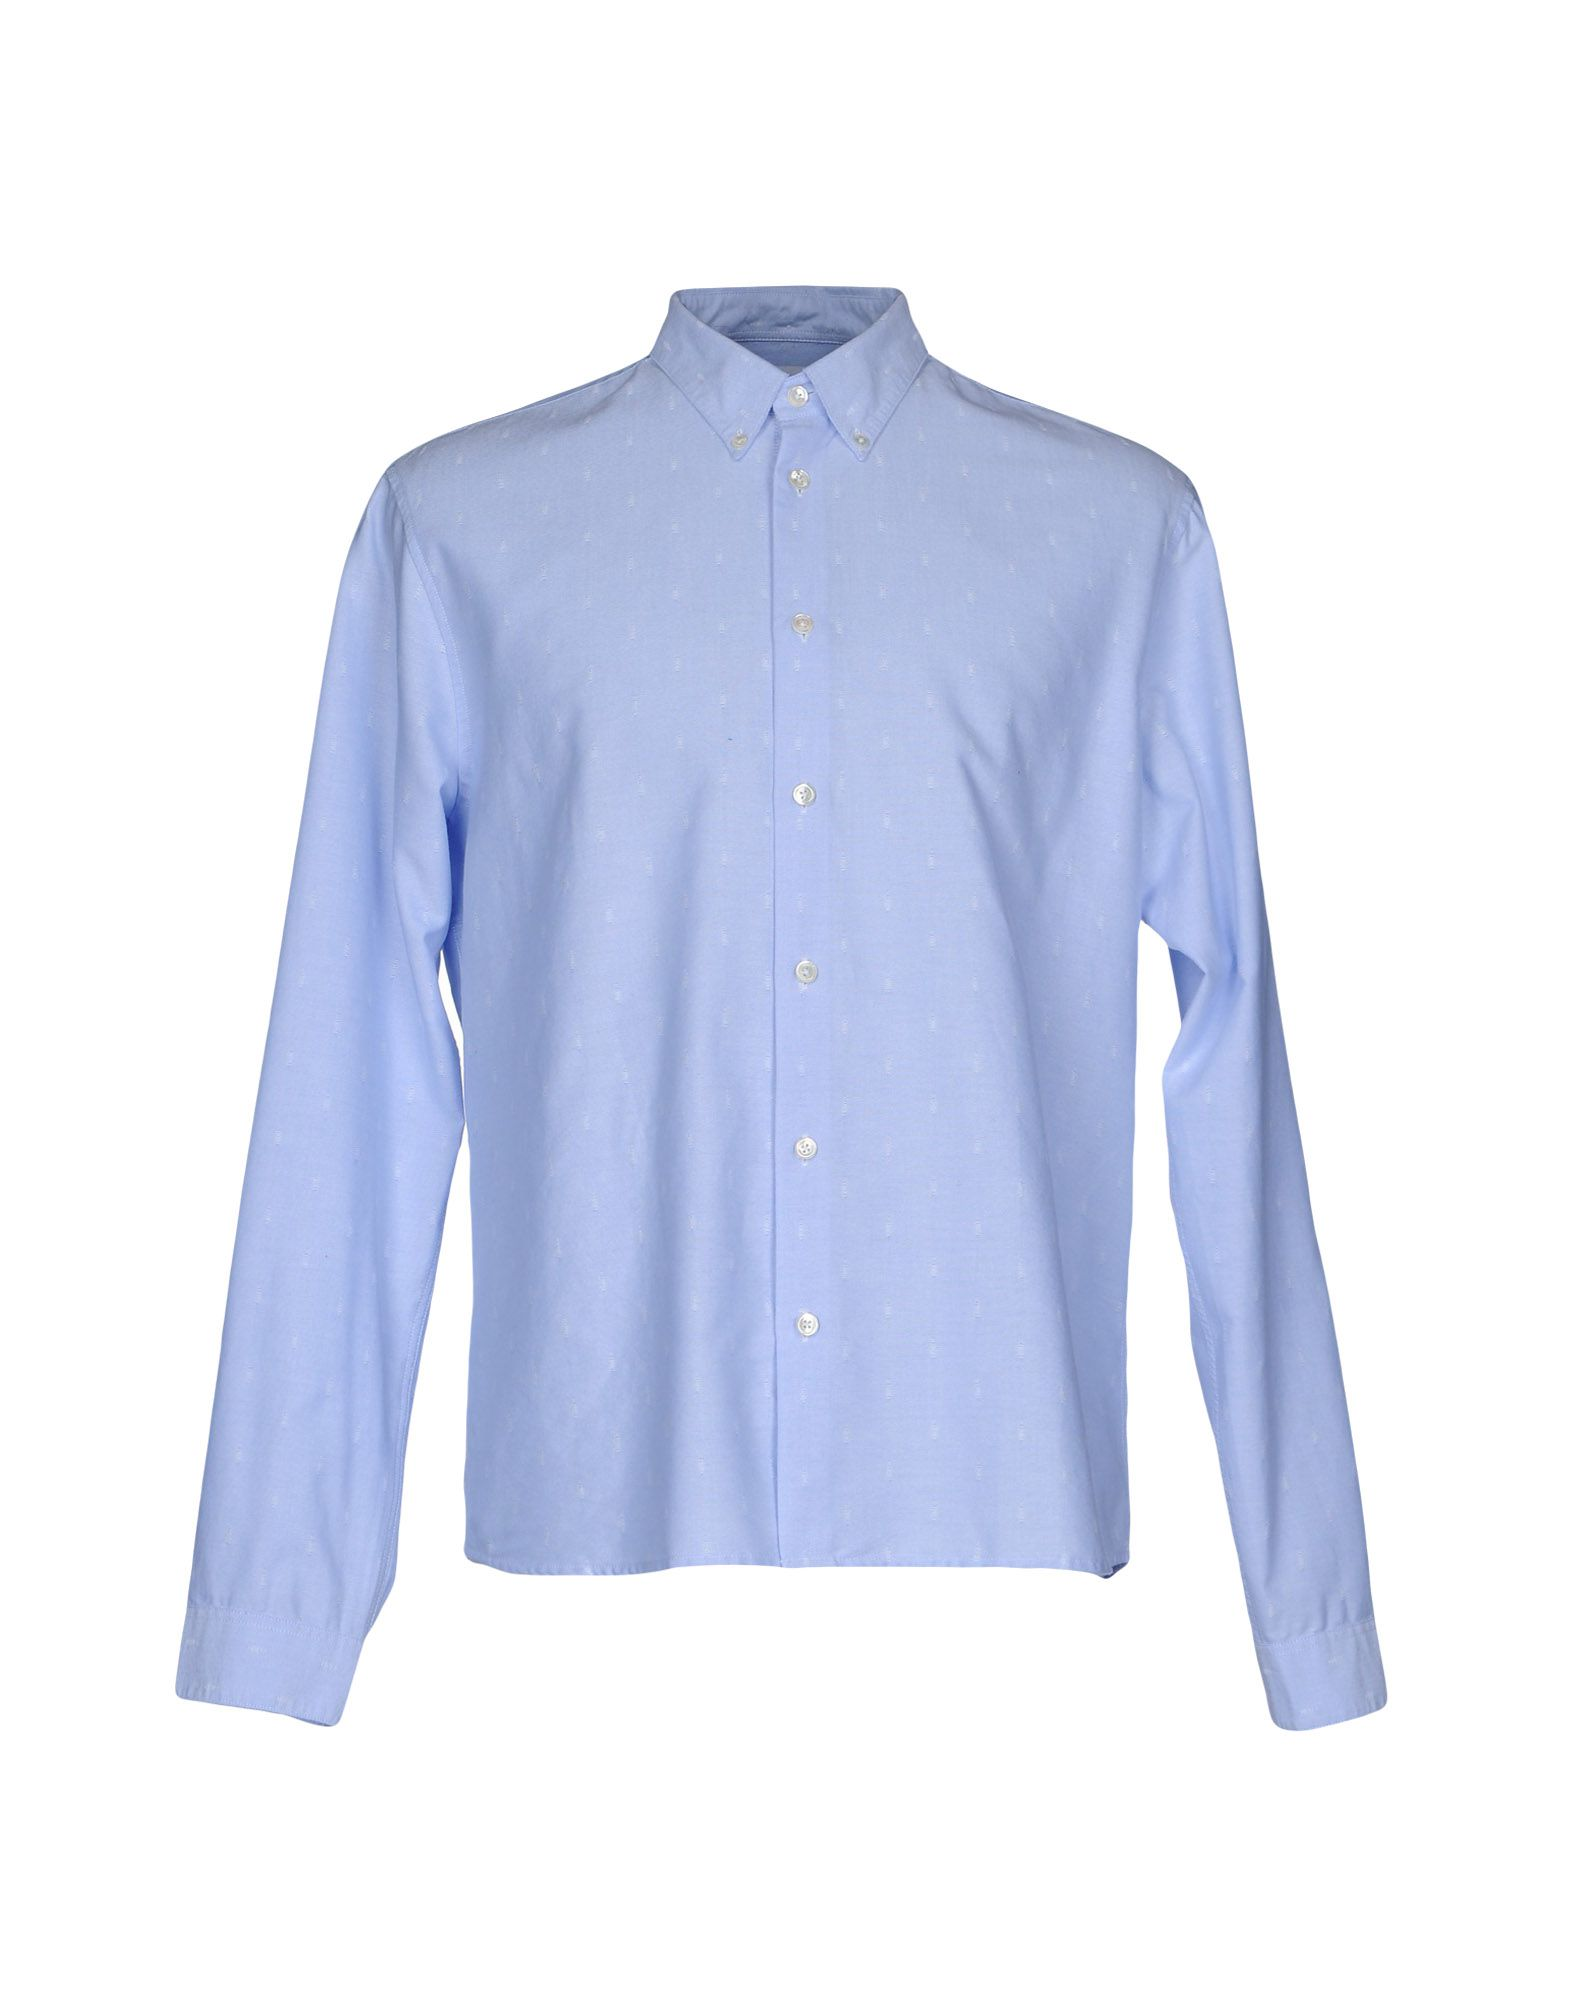 CUISSE DE GRENOUILLE Solid Color Shirt in Sky Blue